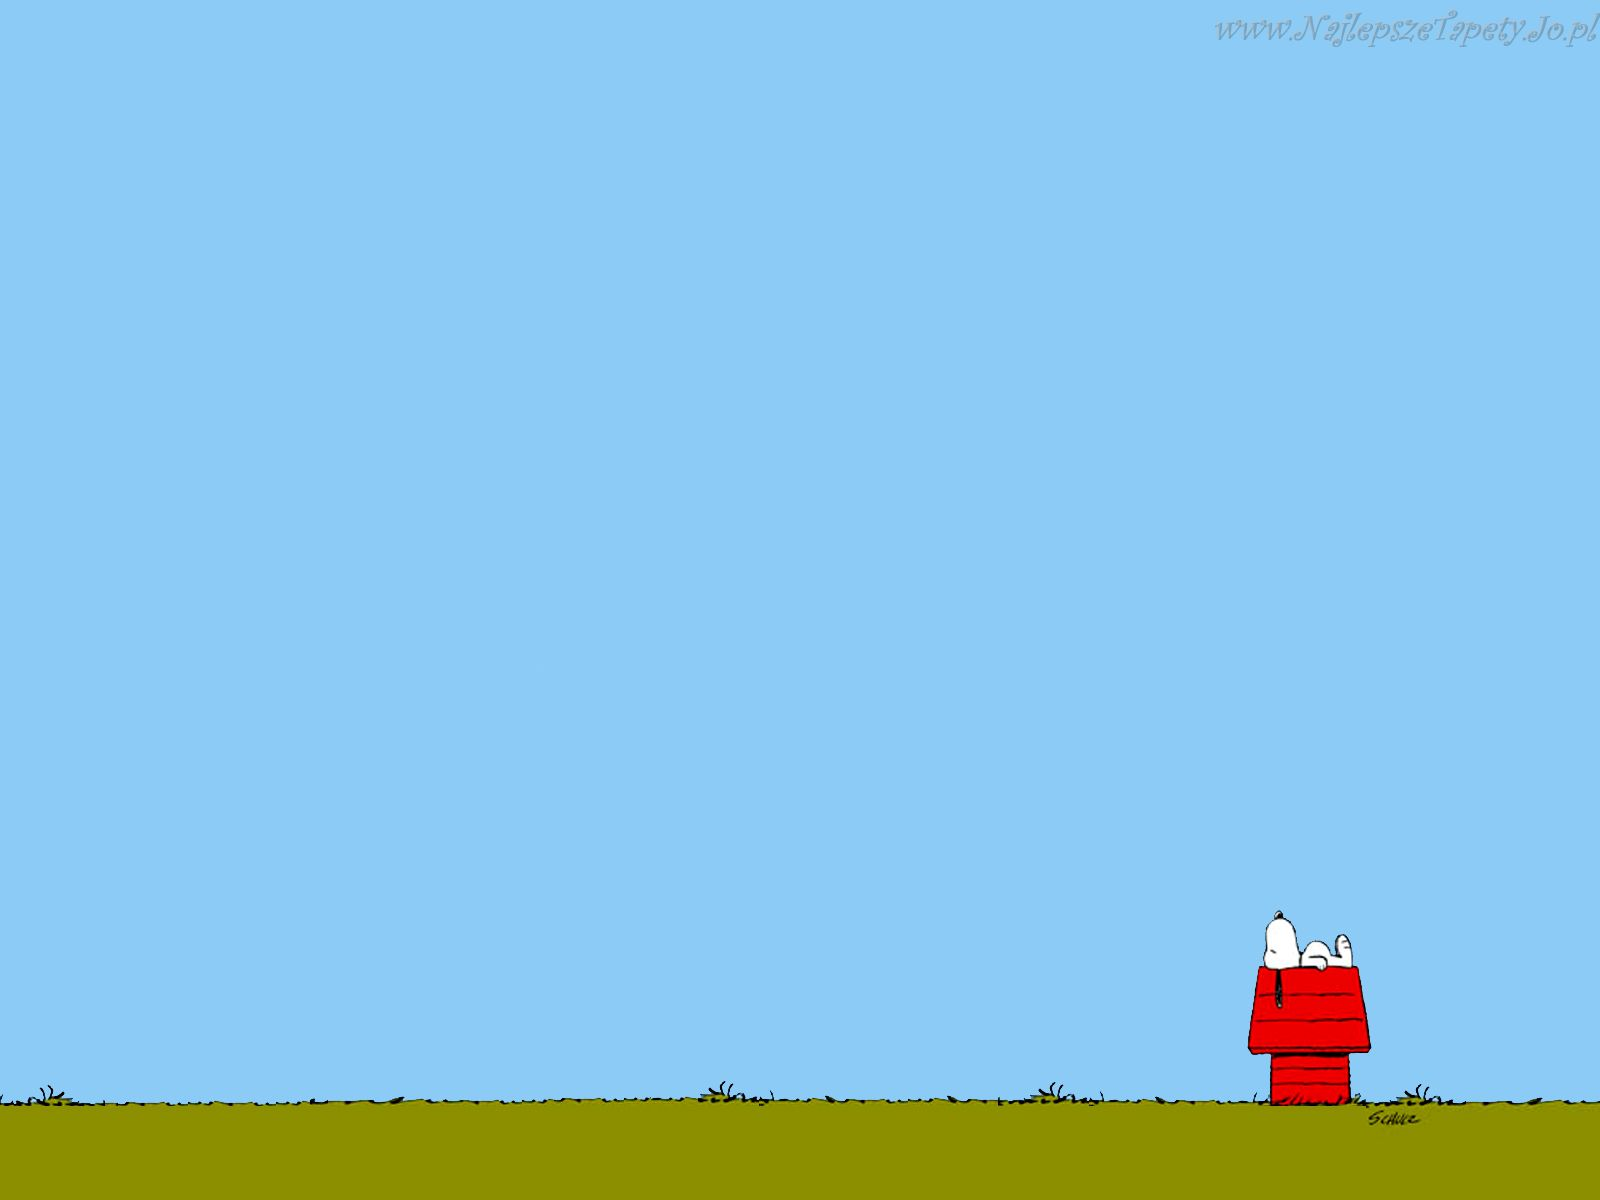 Snoopy Charlie Brown Peanuts Comic Strip wallpaper background 1600x1200